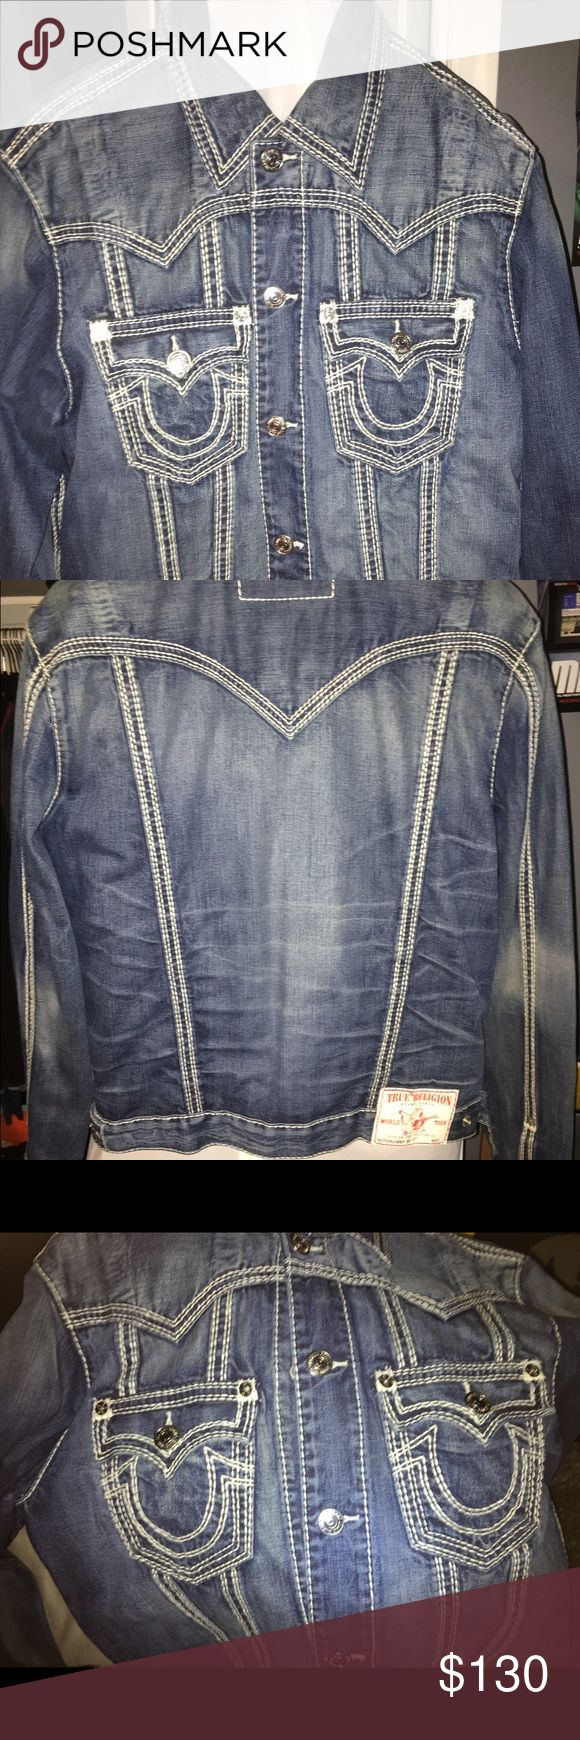 """True Religion Men's Jean jacket Dark navy blue, white stitching, size XL. """"Jimmy Big QT"""". 100% authentic from the store. 5 stitch pattern. No buttons/stitching missing. Matches the """"Billy Big QT"""" jeans in the previous post. Barely worn, great condition. True Religion Jackets & Coats"""